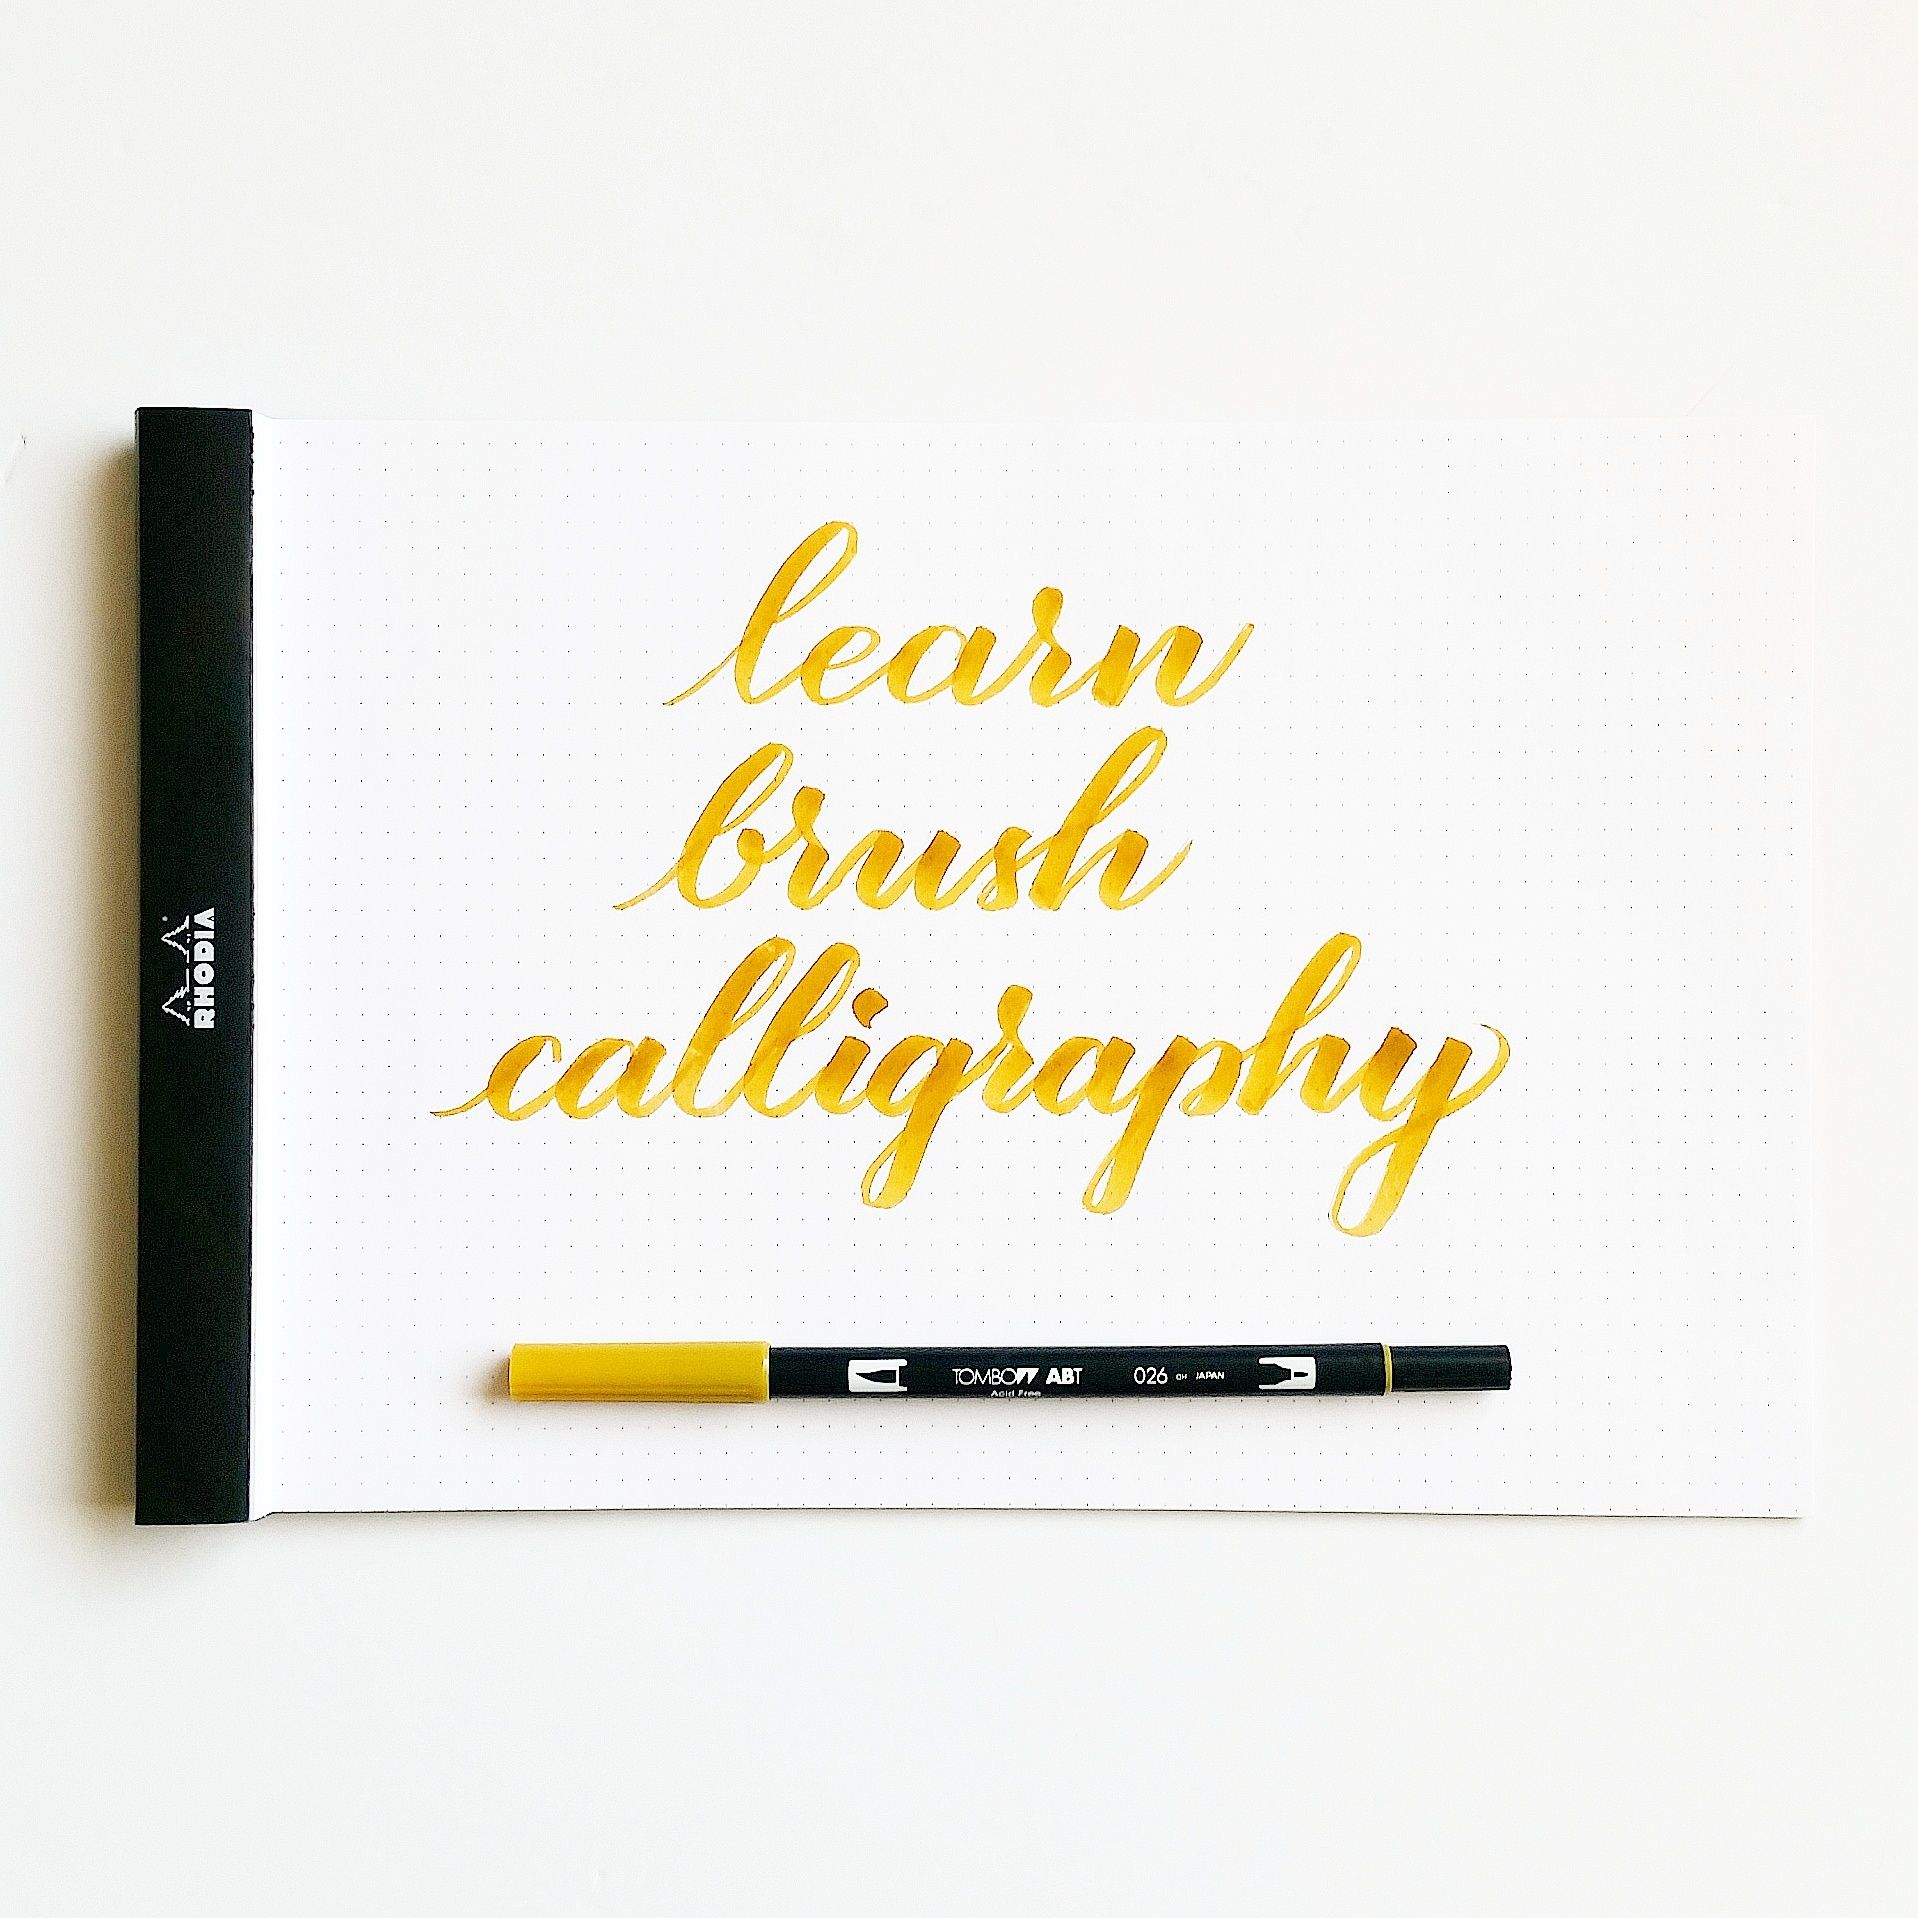 Interested in learning brush calligraphy but don t know